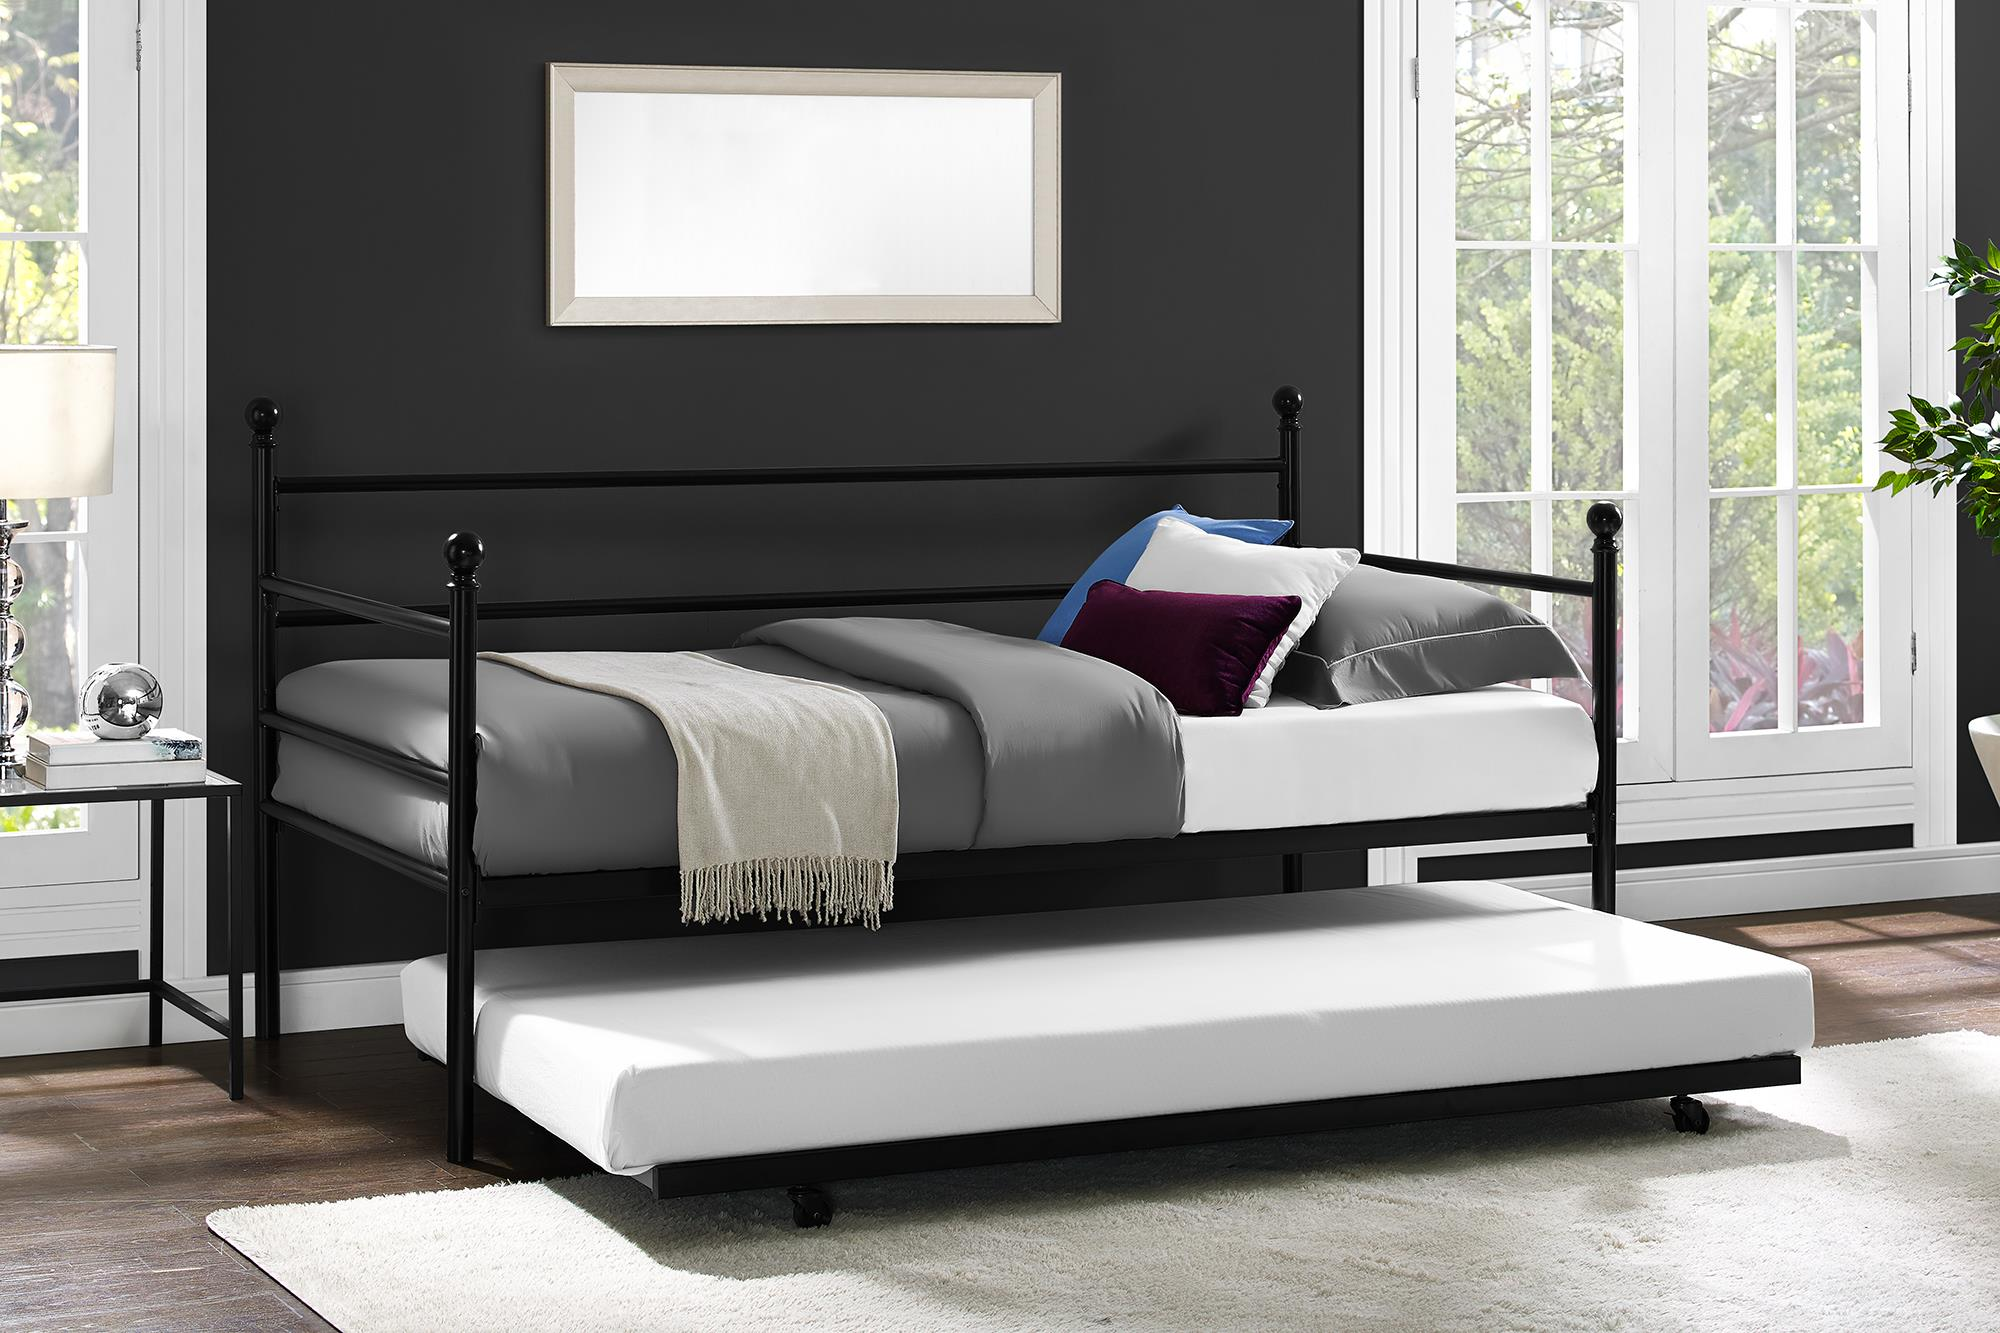 Daybed with trundle twin size metal frame bed space saving - Bed frames for small rooms ...